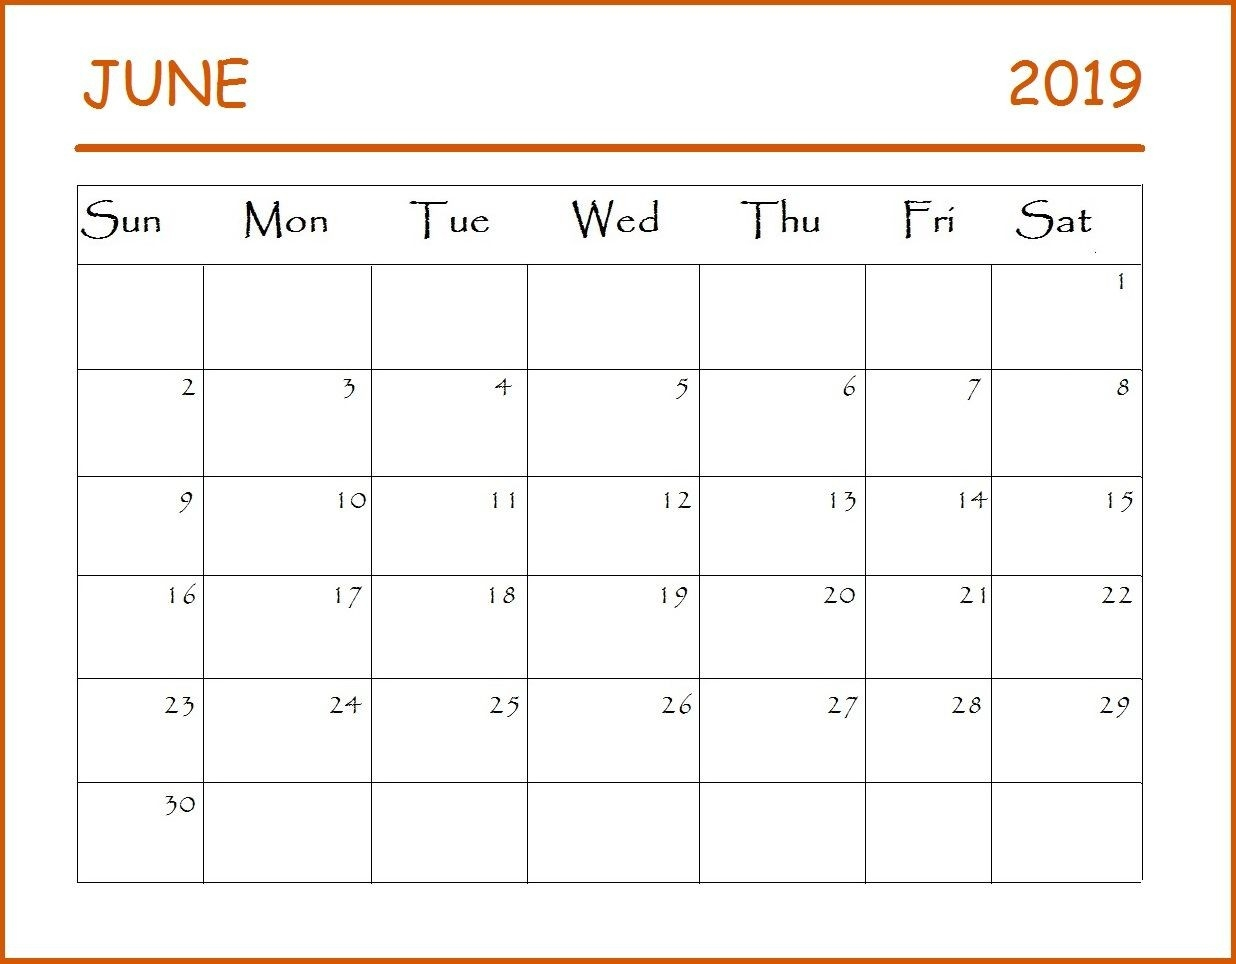 June Calendar 2019 #june #june2019 #june2019Calendar-Monthly Schdule For June